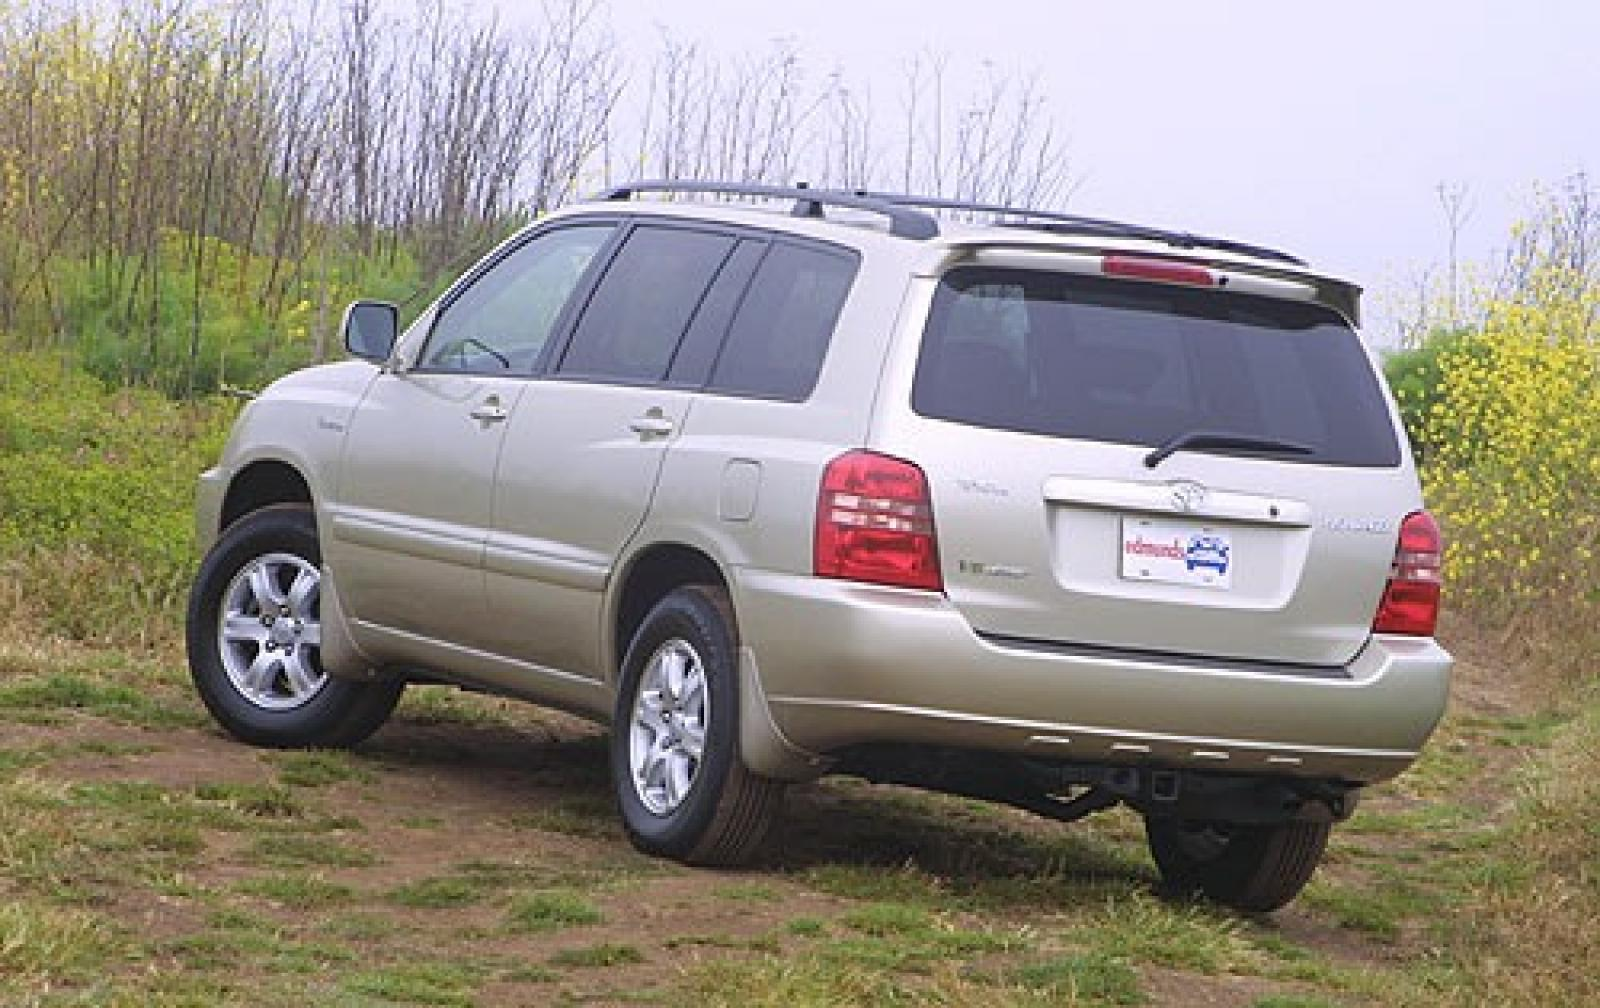 2003 toyota highlander information and photos zombiedrive